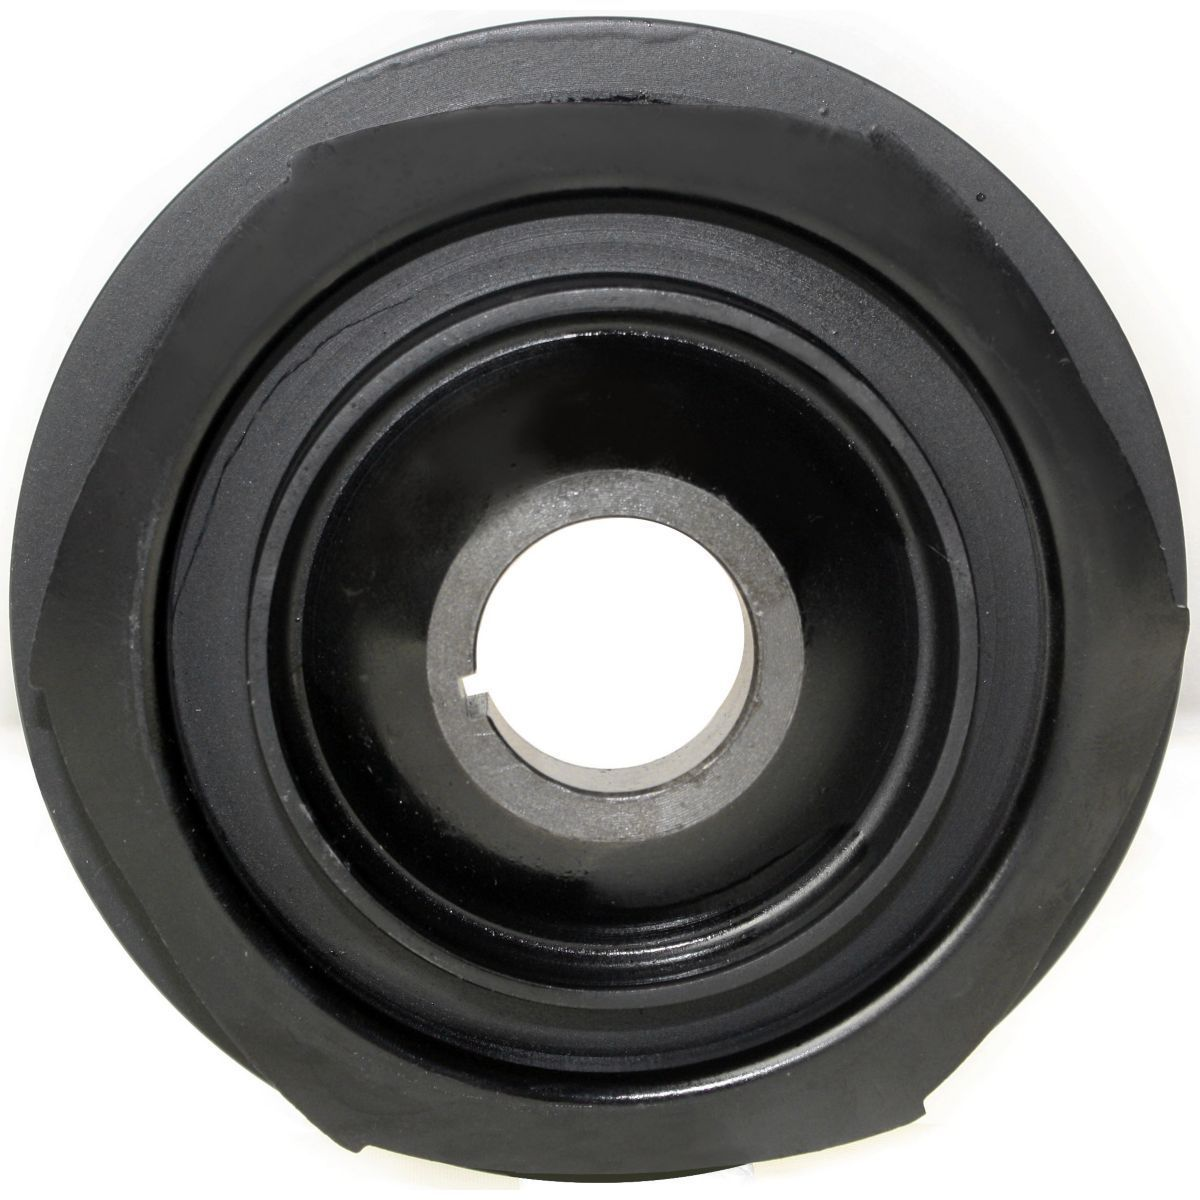 Brand New Harmonic Balancer Crankshaft Pulley for Mazda Protege 626